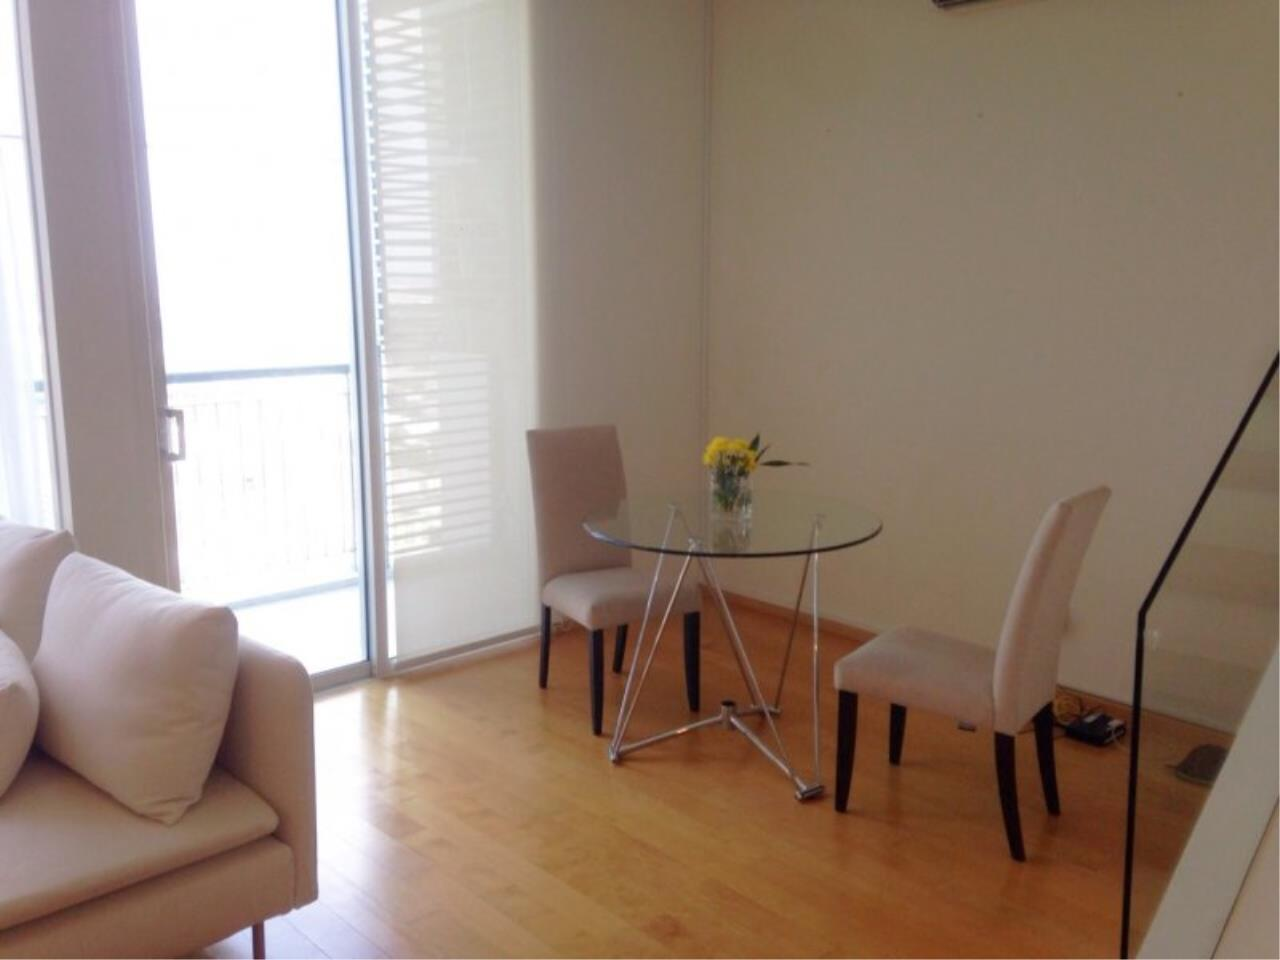 Piri Property Agency's Duplex 1 Bedroom in the Villa Ratchatewi Condo for rent on high floor 5